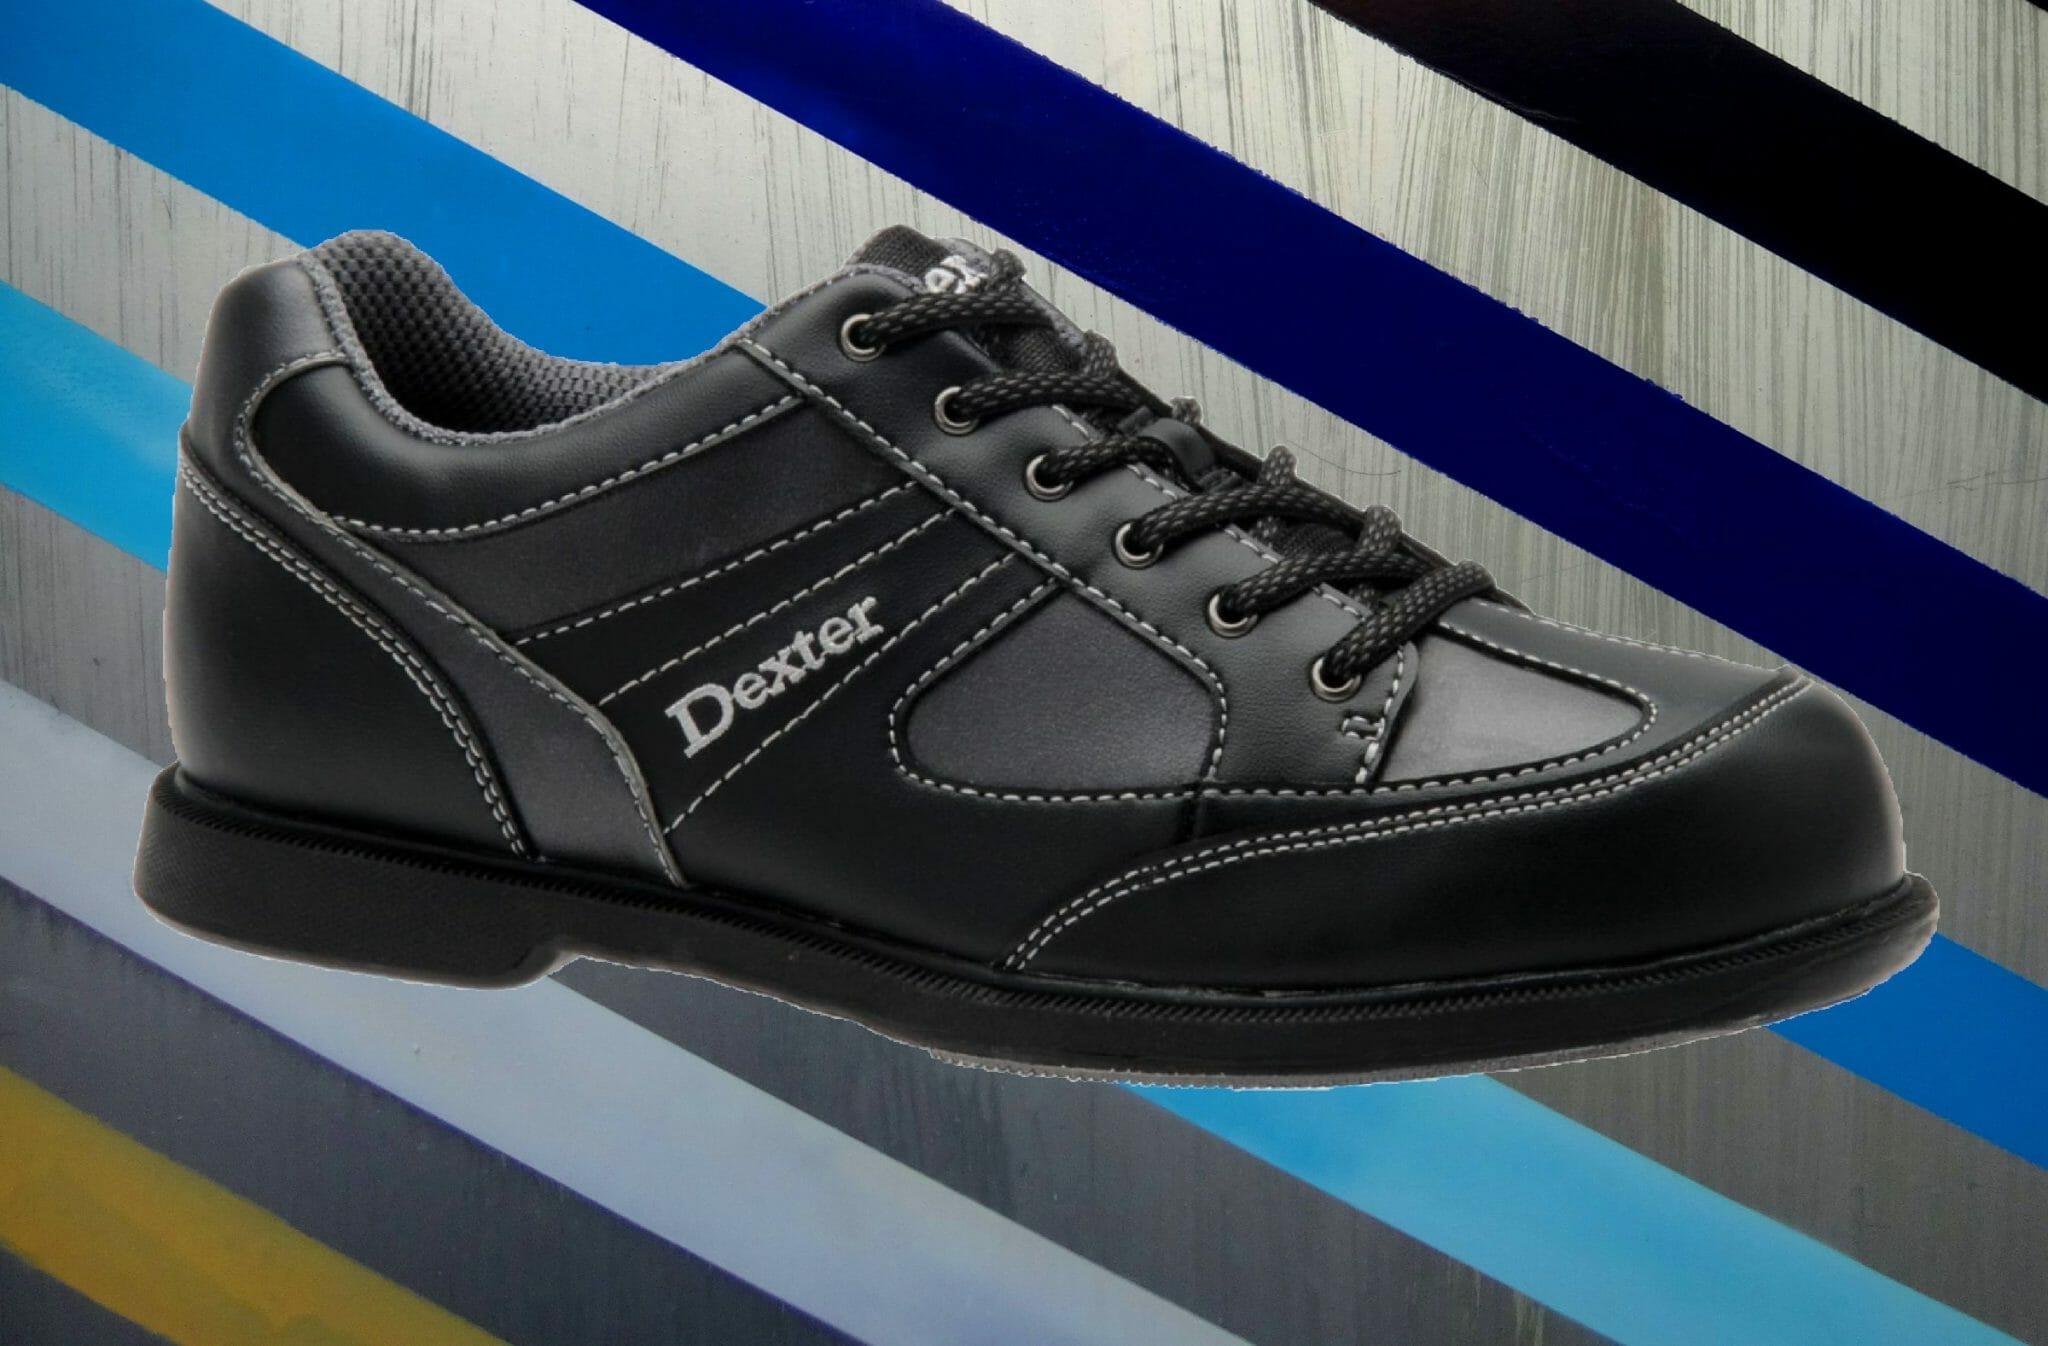 The Dexter Mens ProAm 2 Bowling Shoe